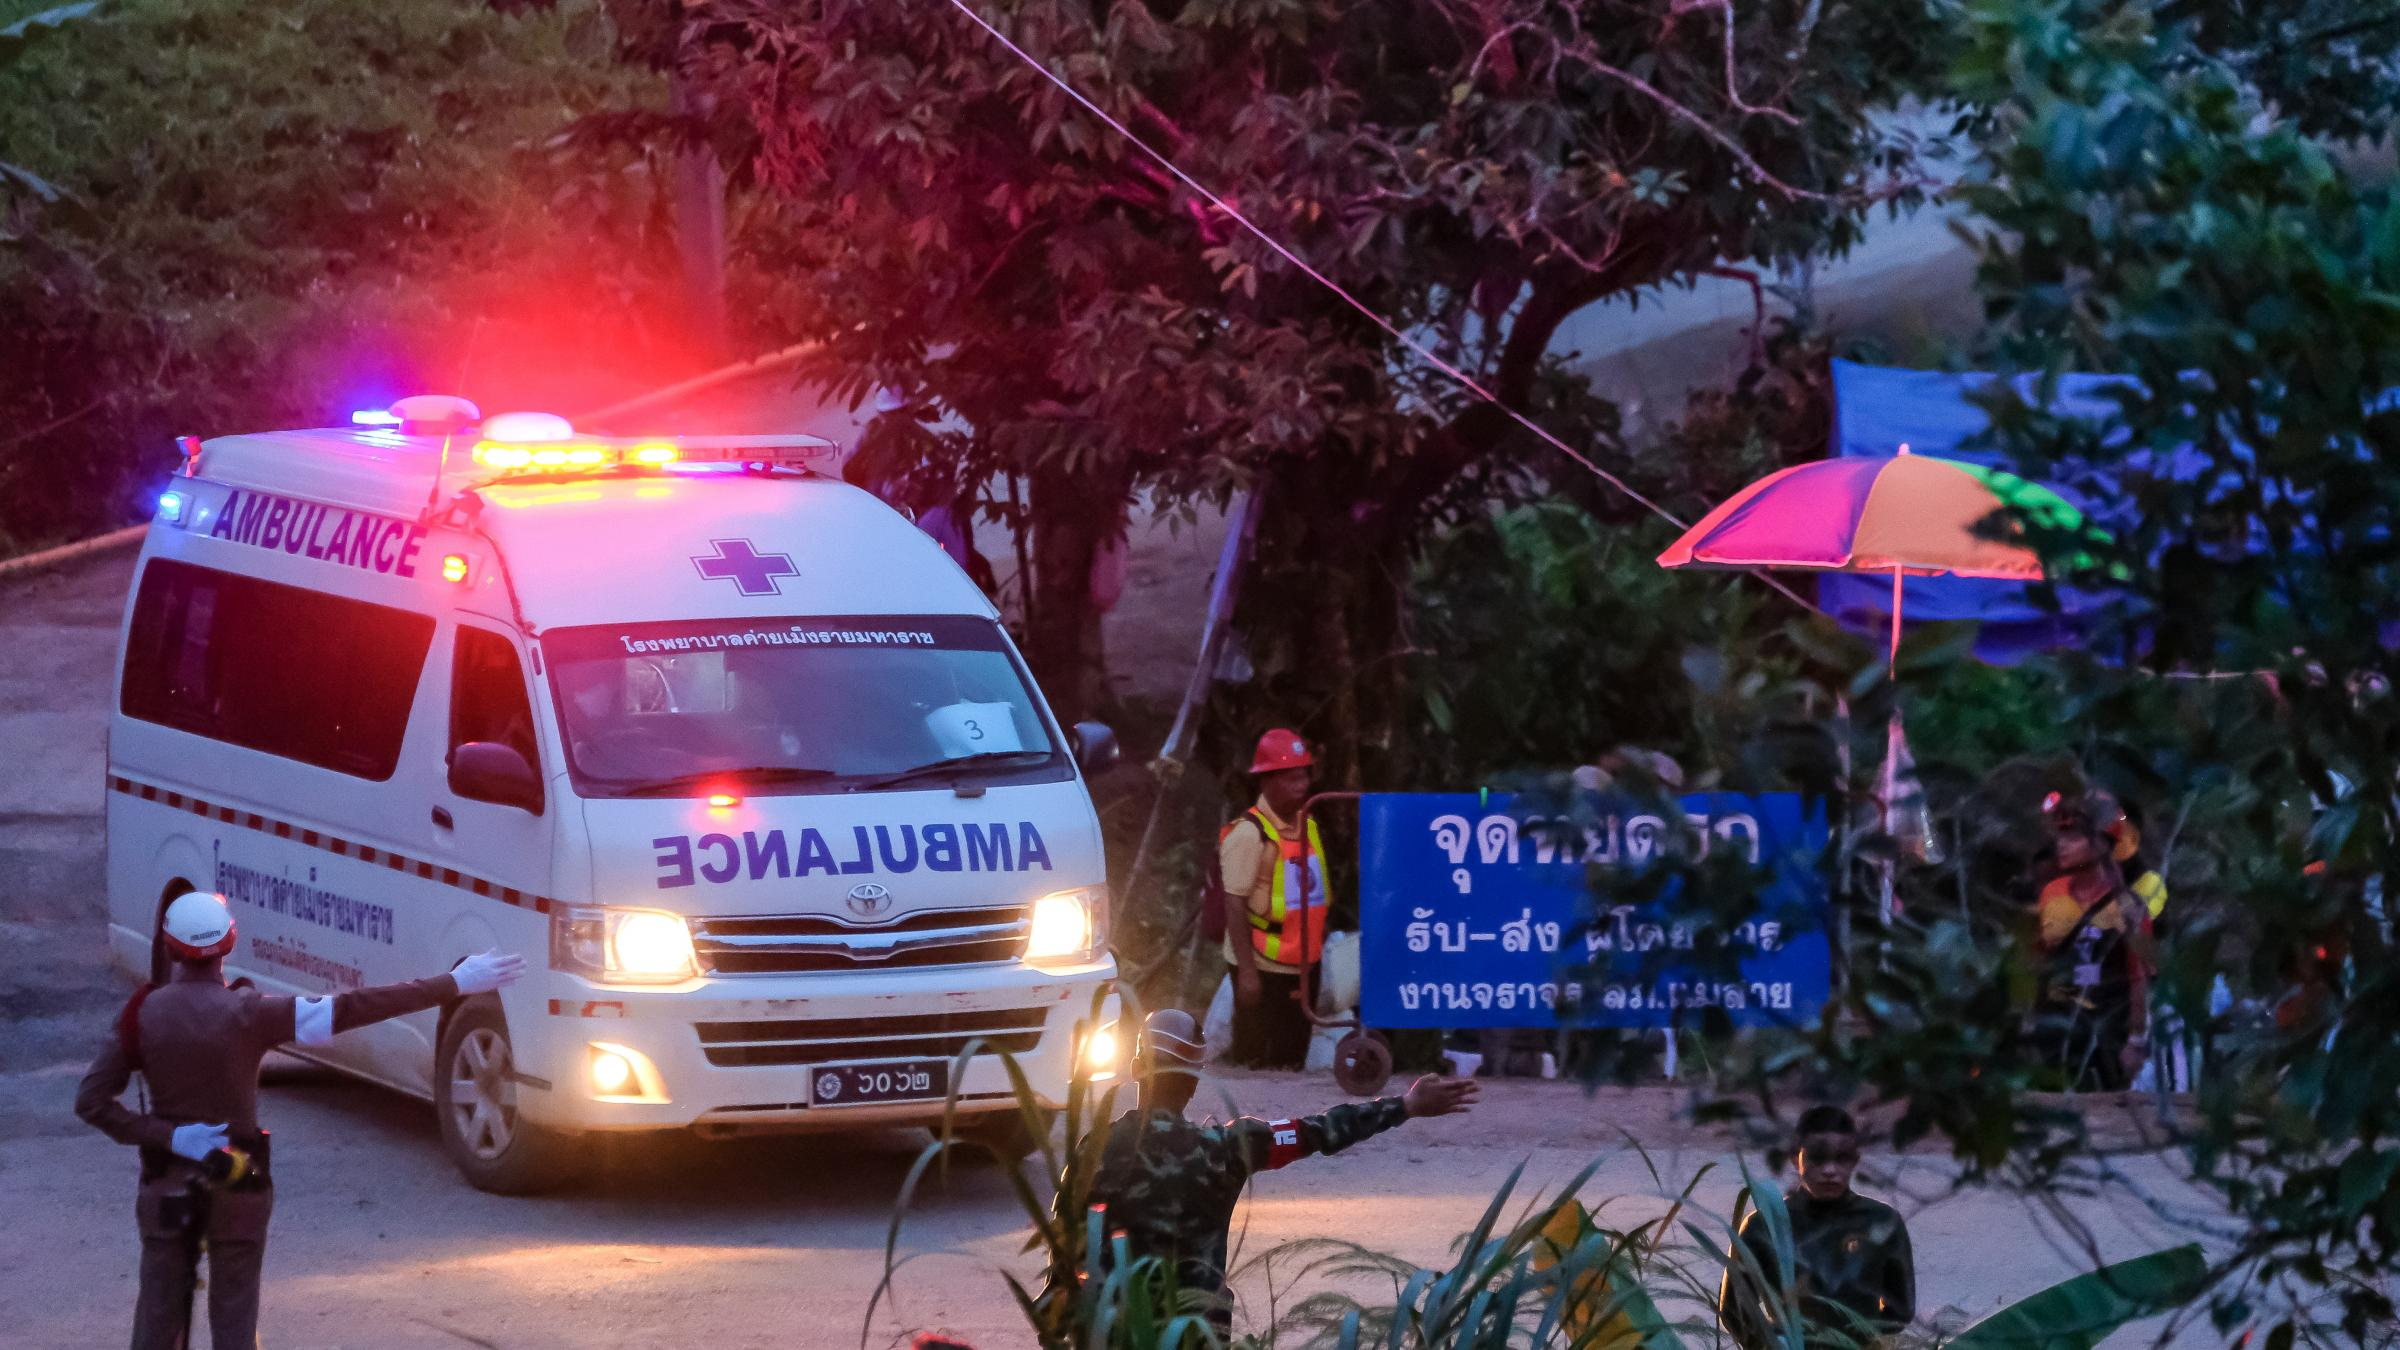 Ambulances carried away the sixth and seventh boys freed from the Tham Luang Nang Non cave. Photograph: Getty